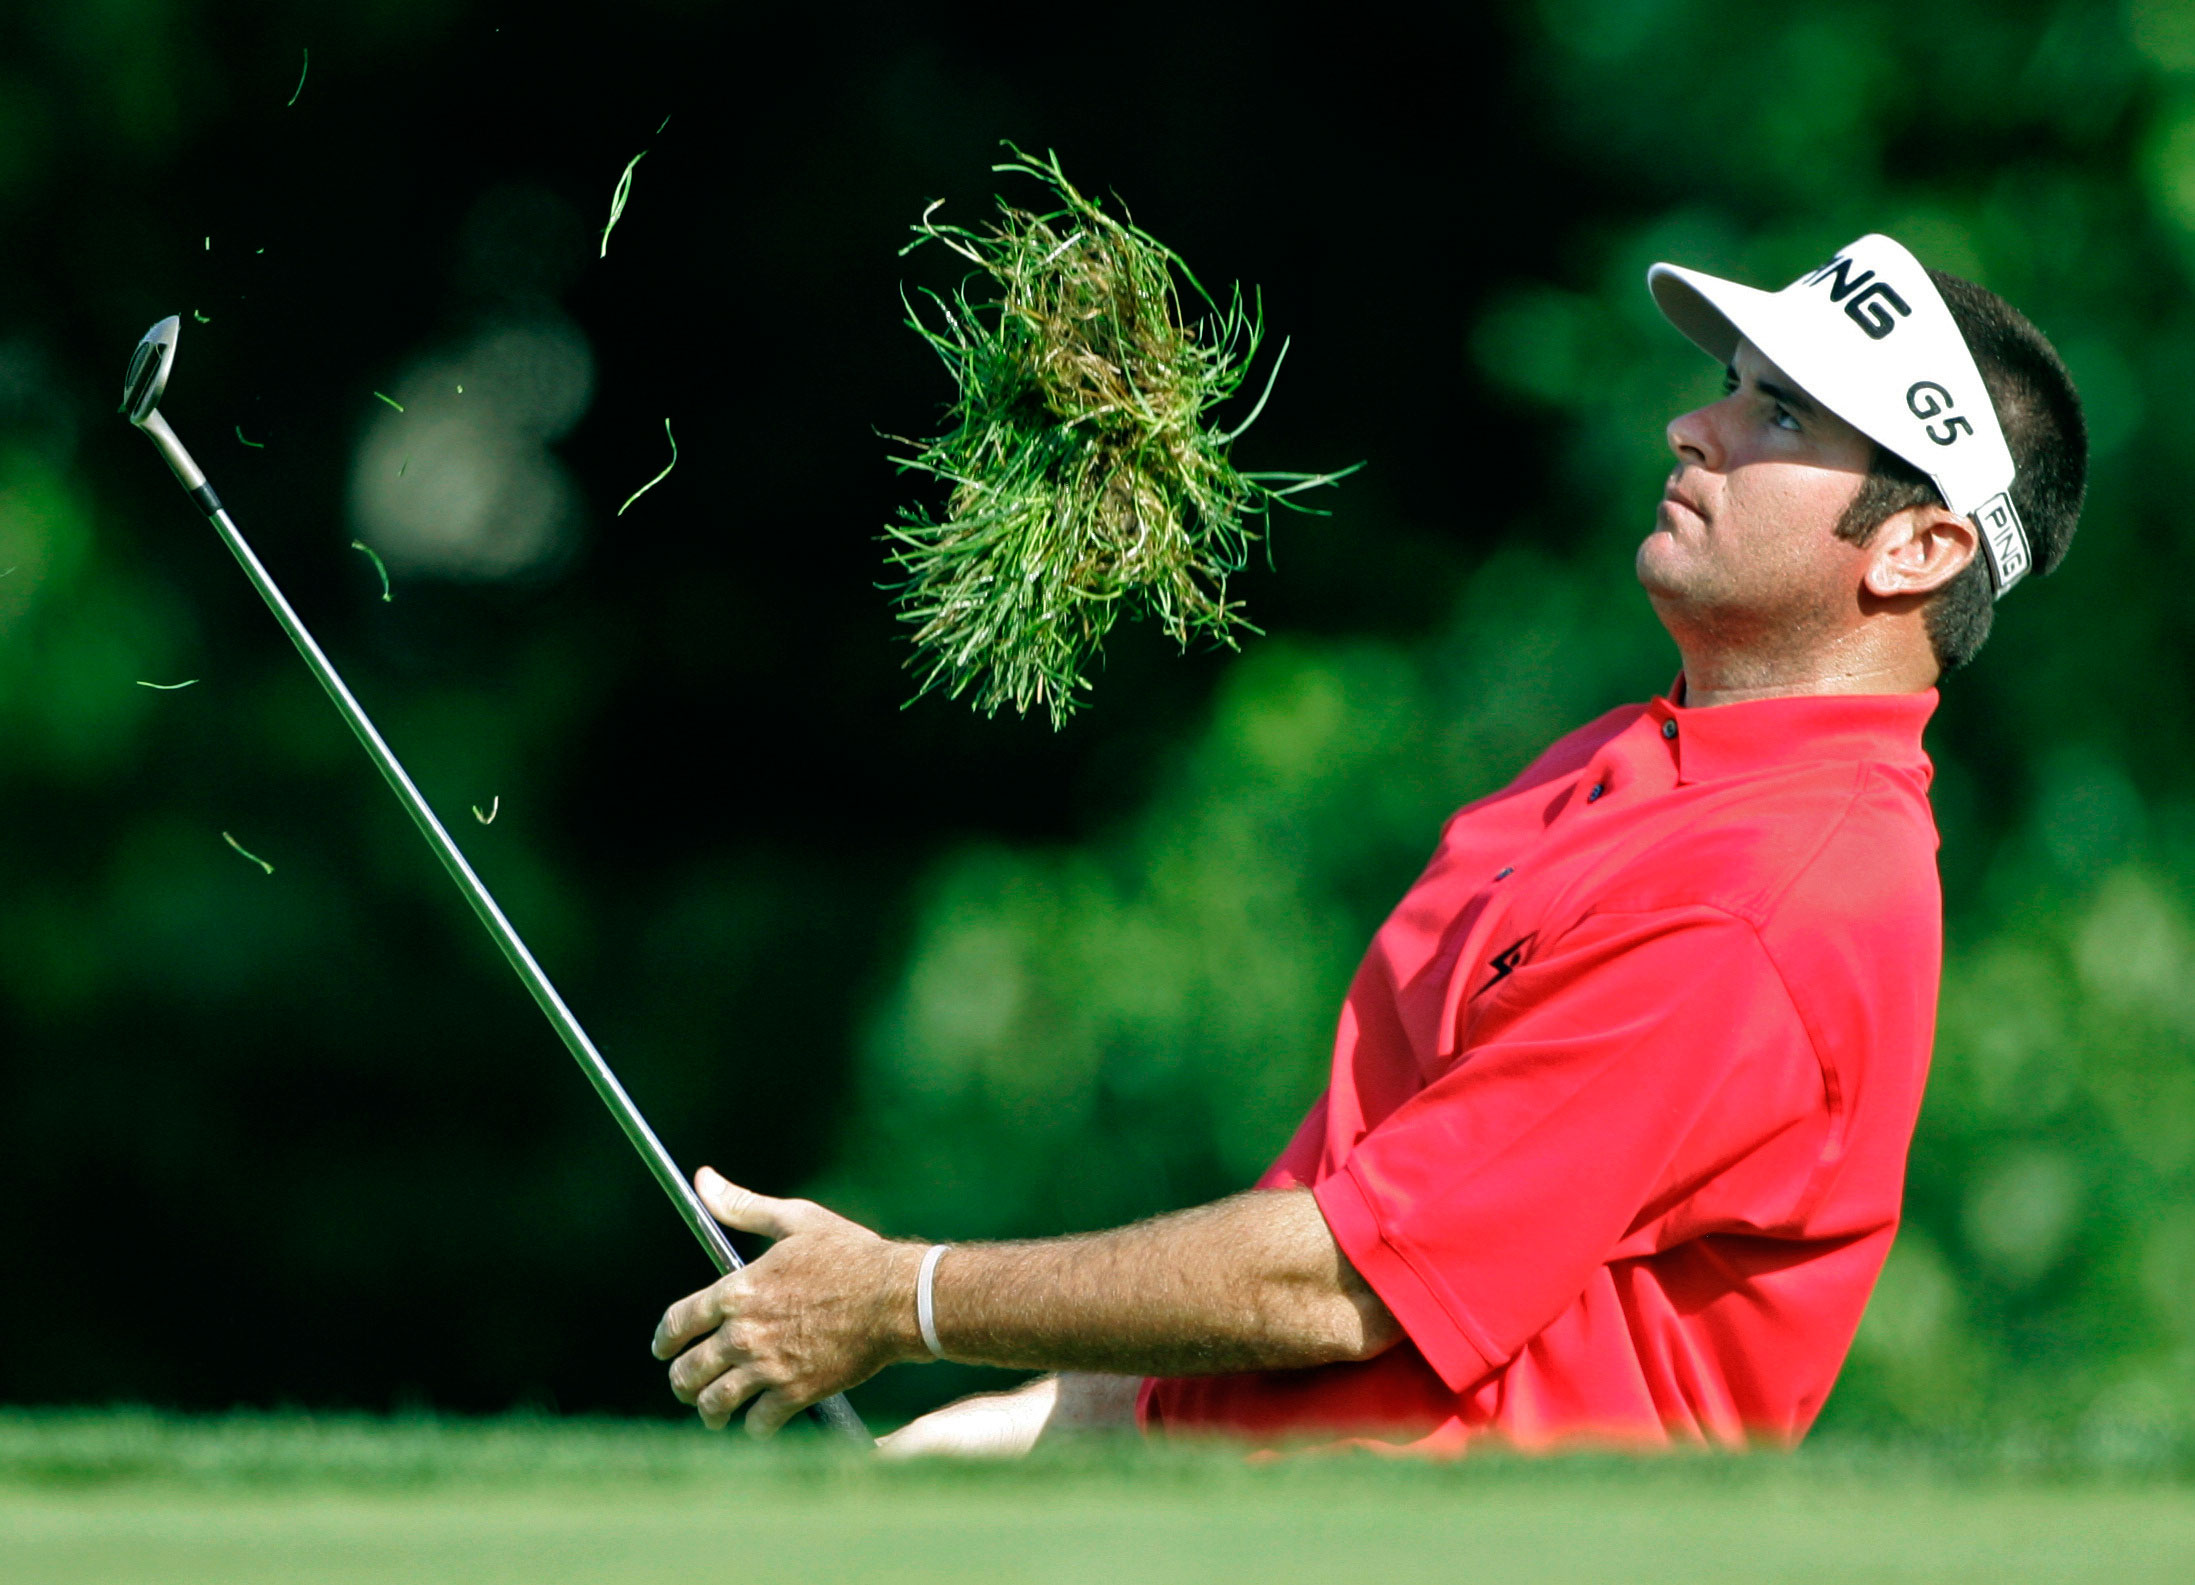 2007 U.S. Open                      Bubba Watson takes a Bubba-sized divot while hitting from the rough at the 2007 U.S. Open. He shot 70-71-74-74 and finished tied for fifth, four shots behind winner Angel Cabrera. It was Bubba's best finish to date in a major.